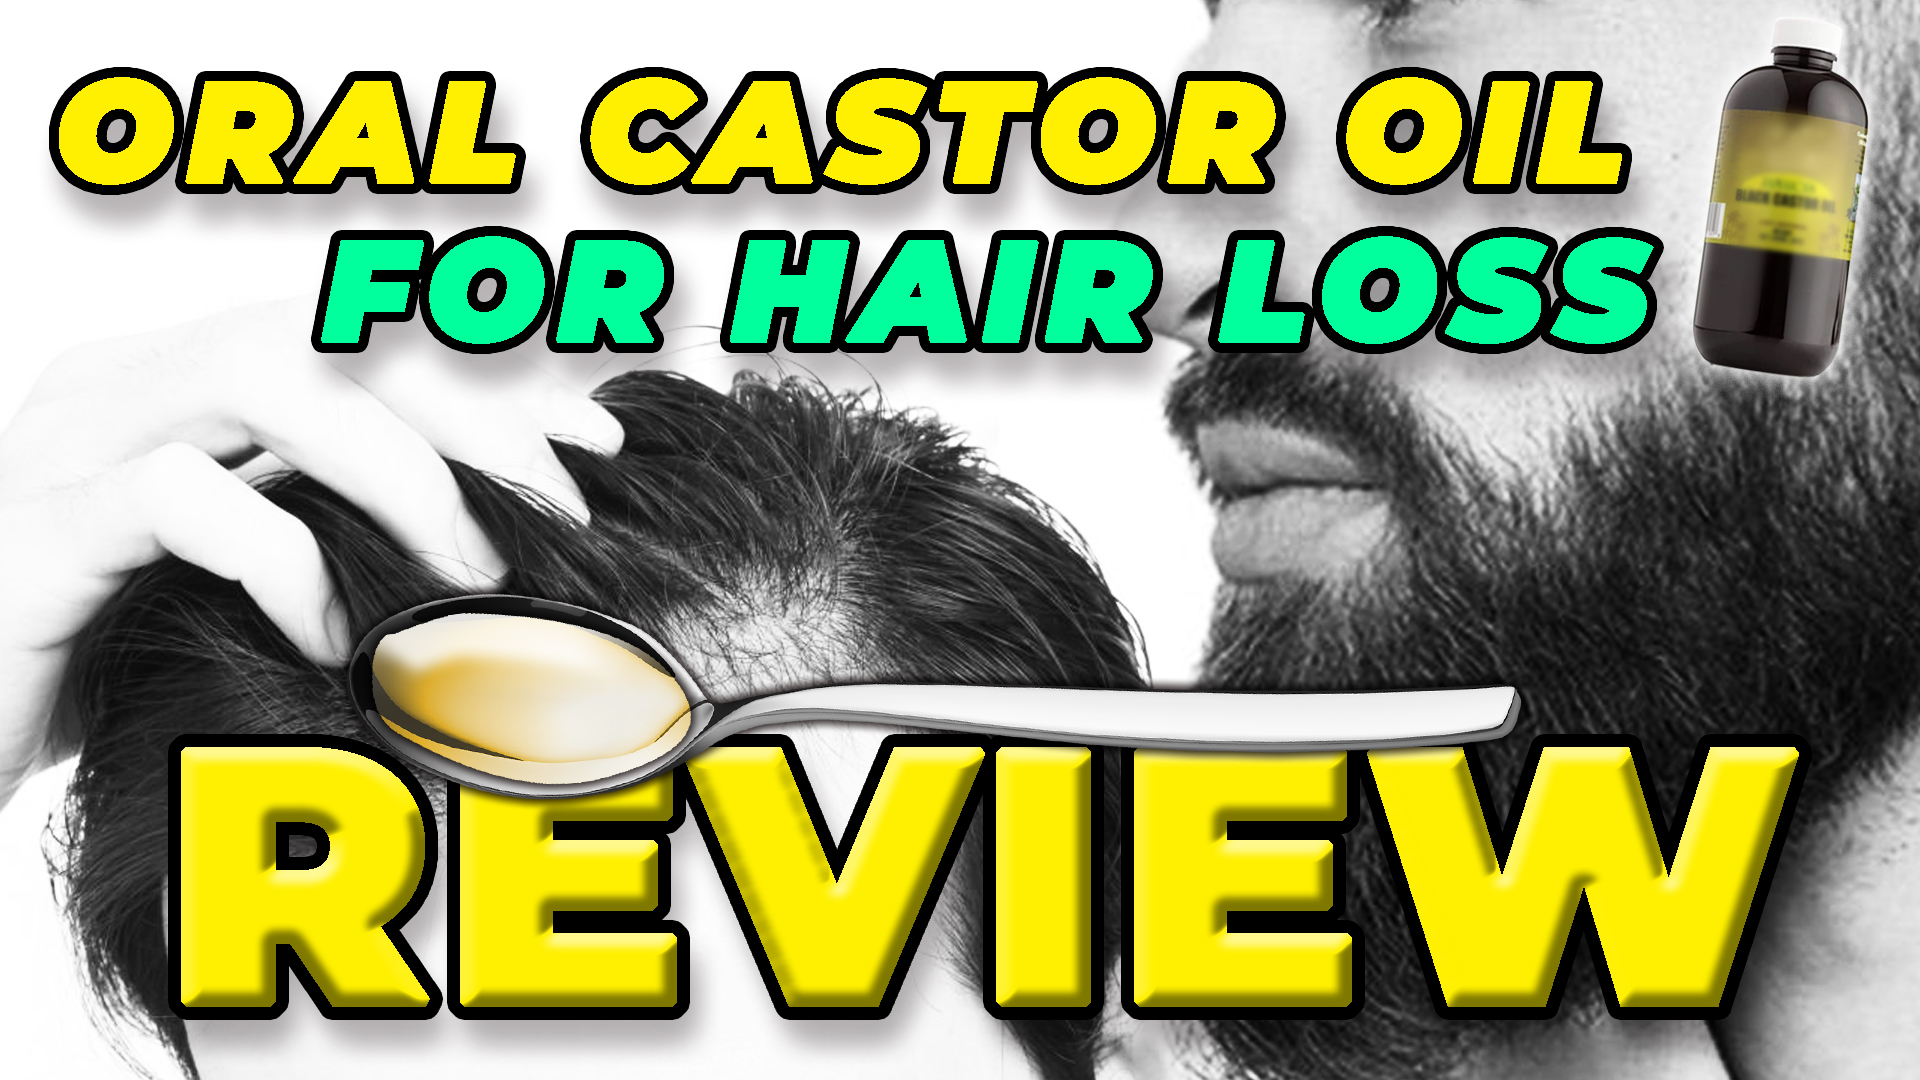 Man applies castor oil to his head and gives review on how effective oral castor oil for hair loss is